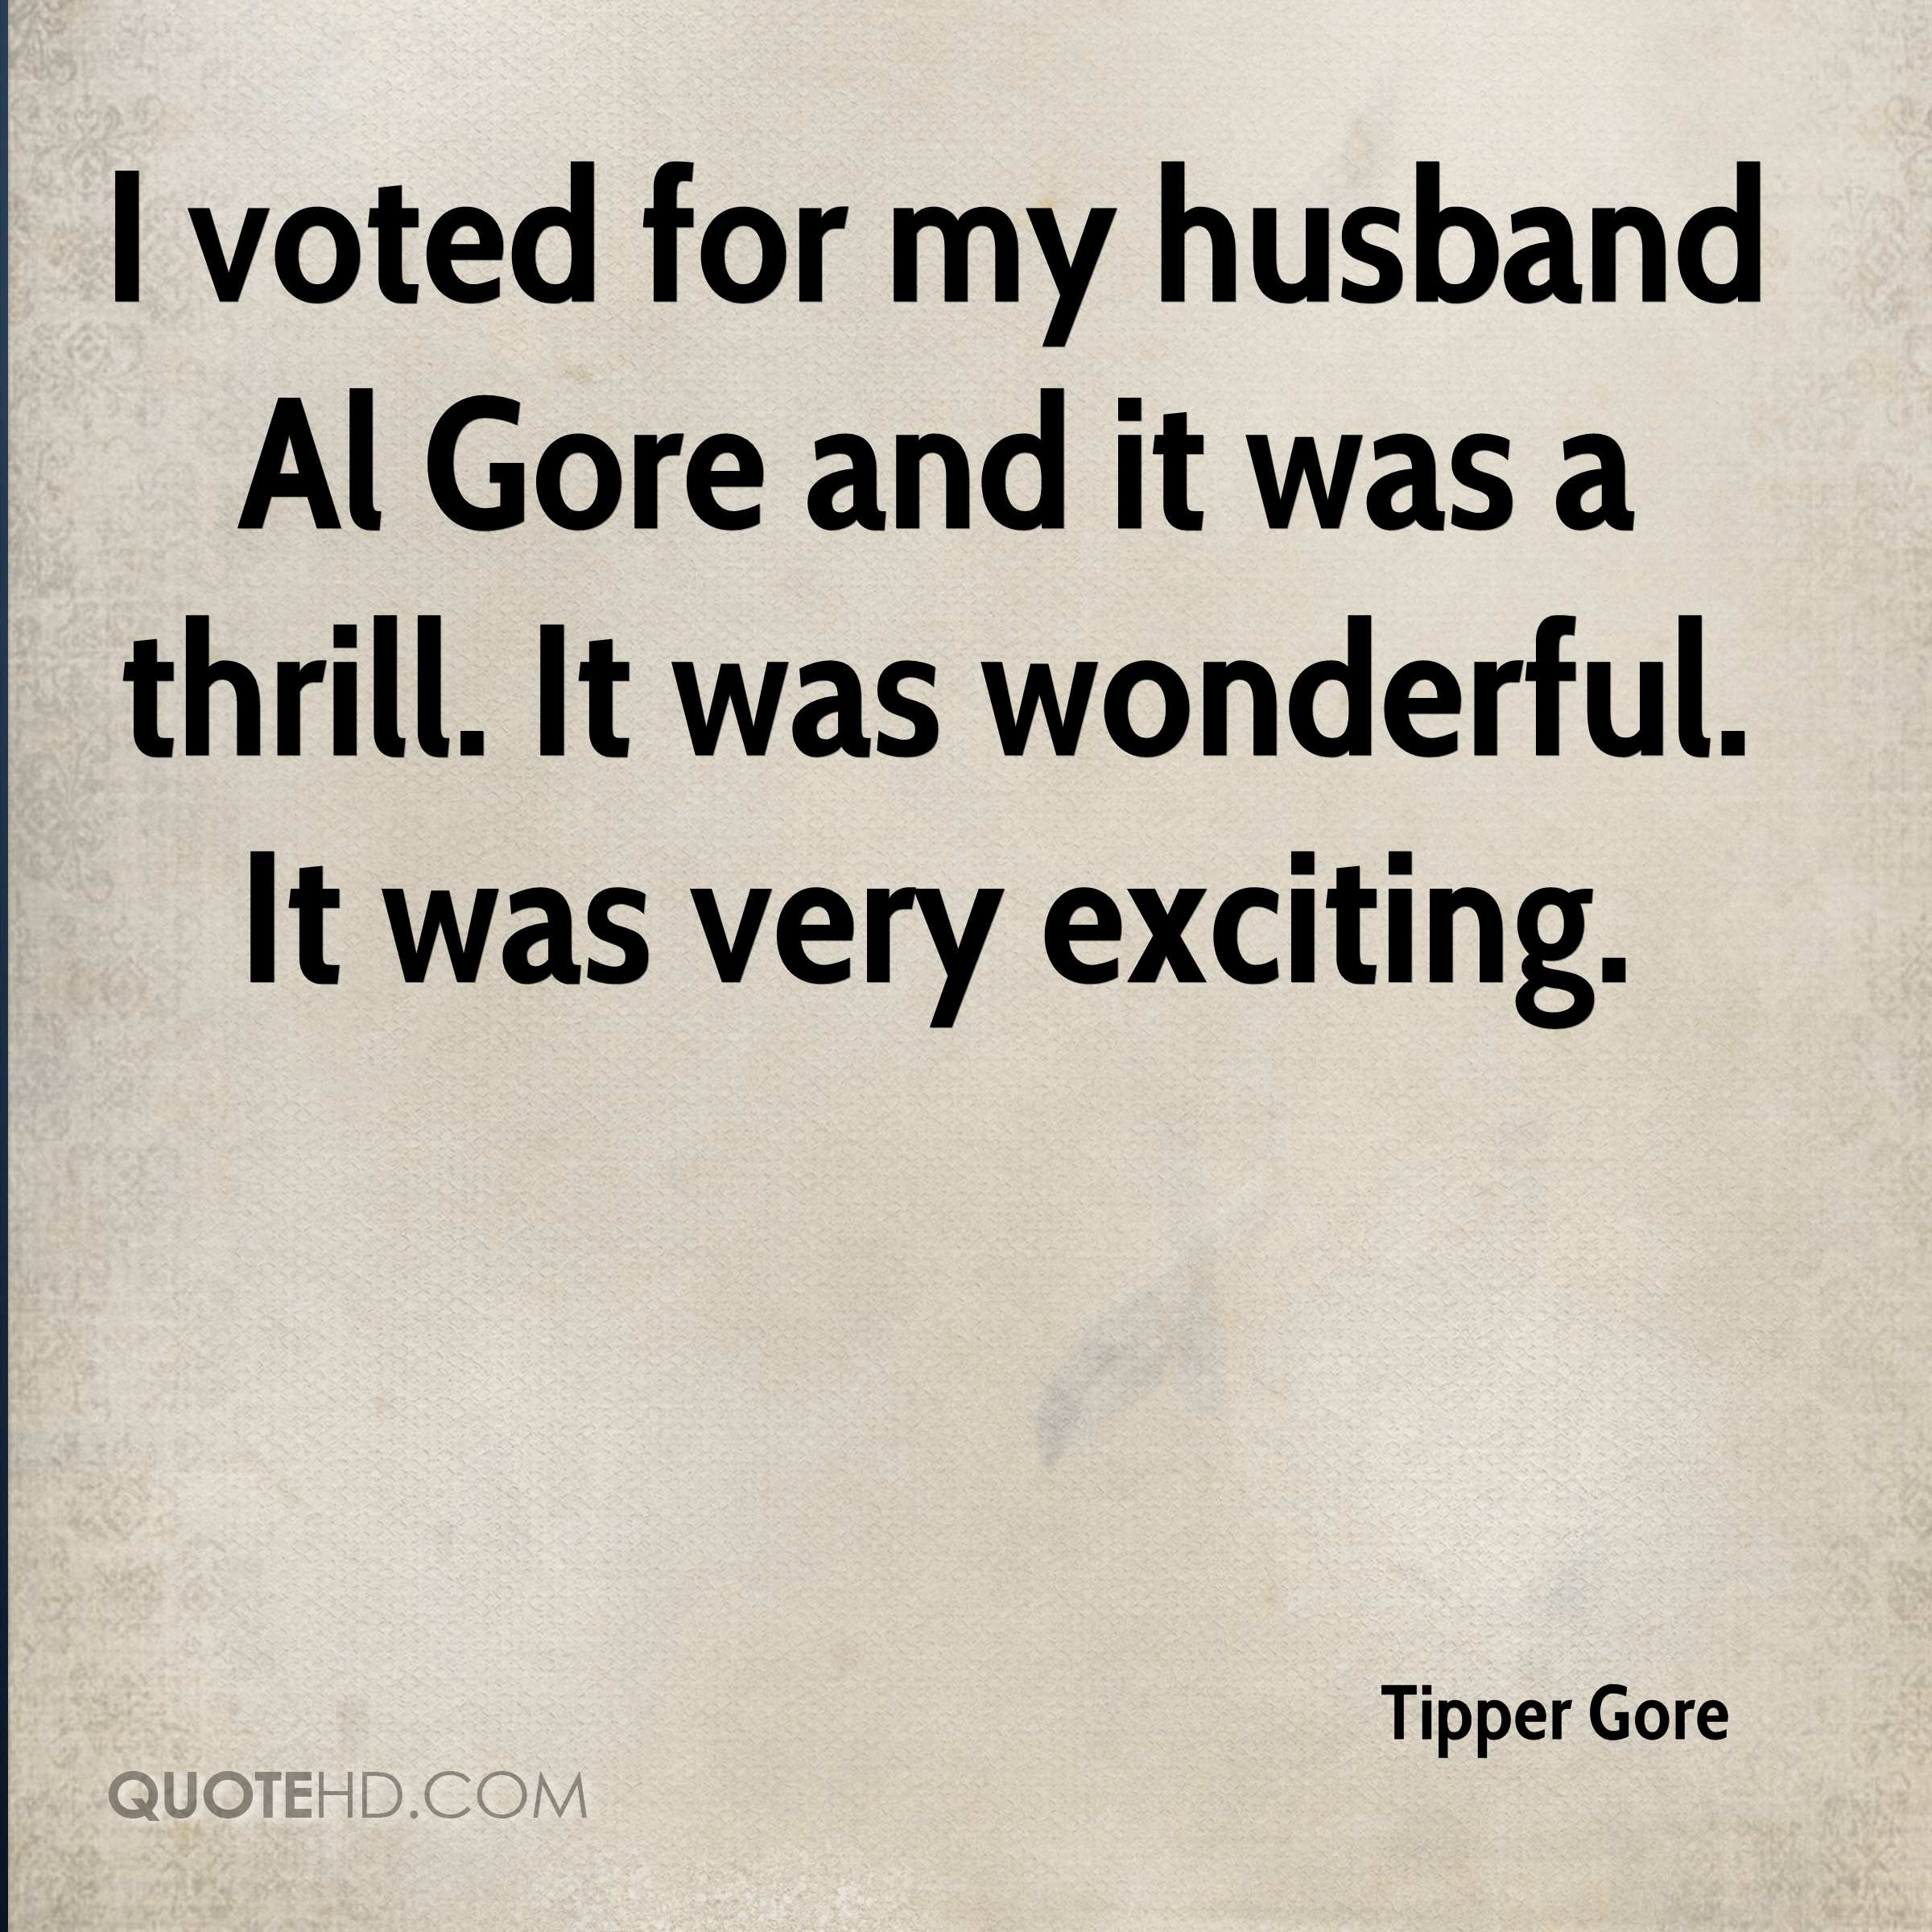 I voted for my husband Al Gore and it was a thrill. It was wonderful. It was very exciting.